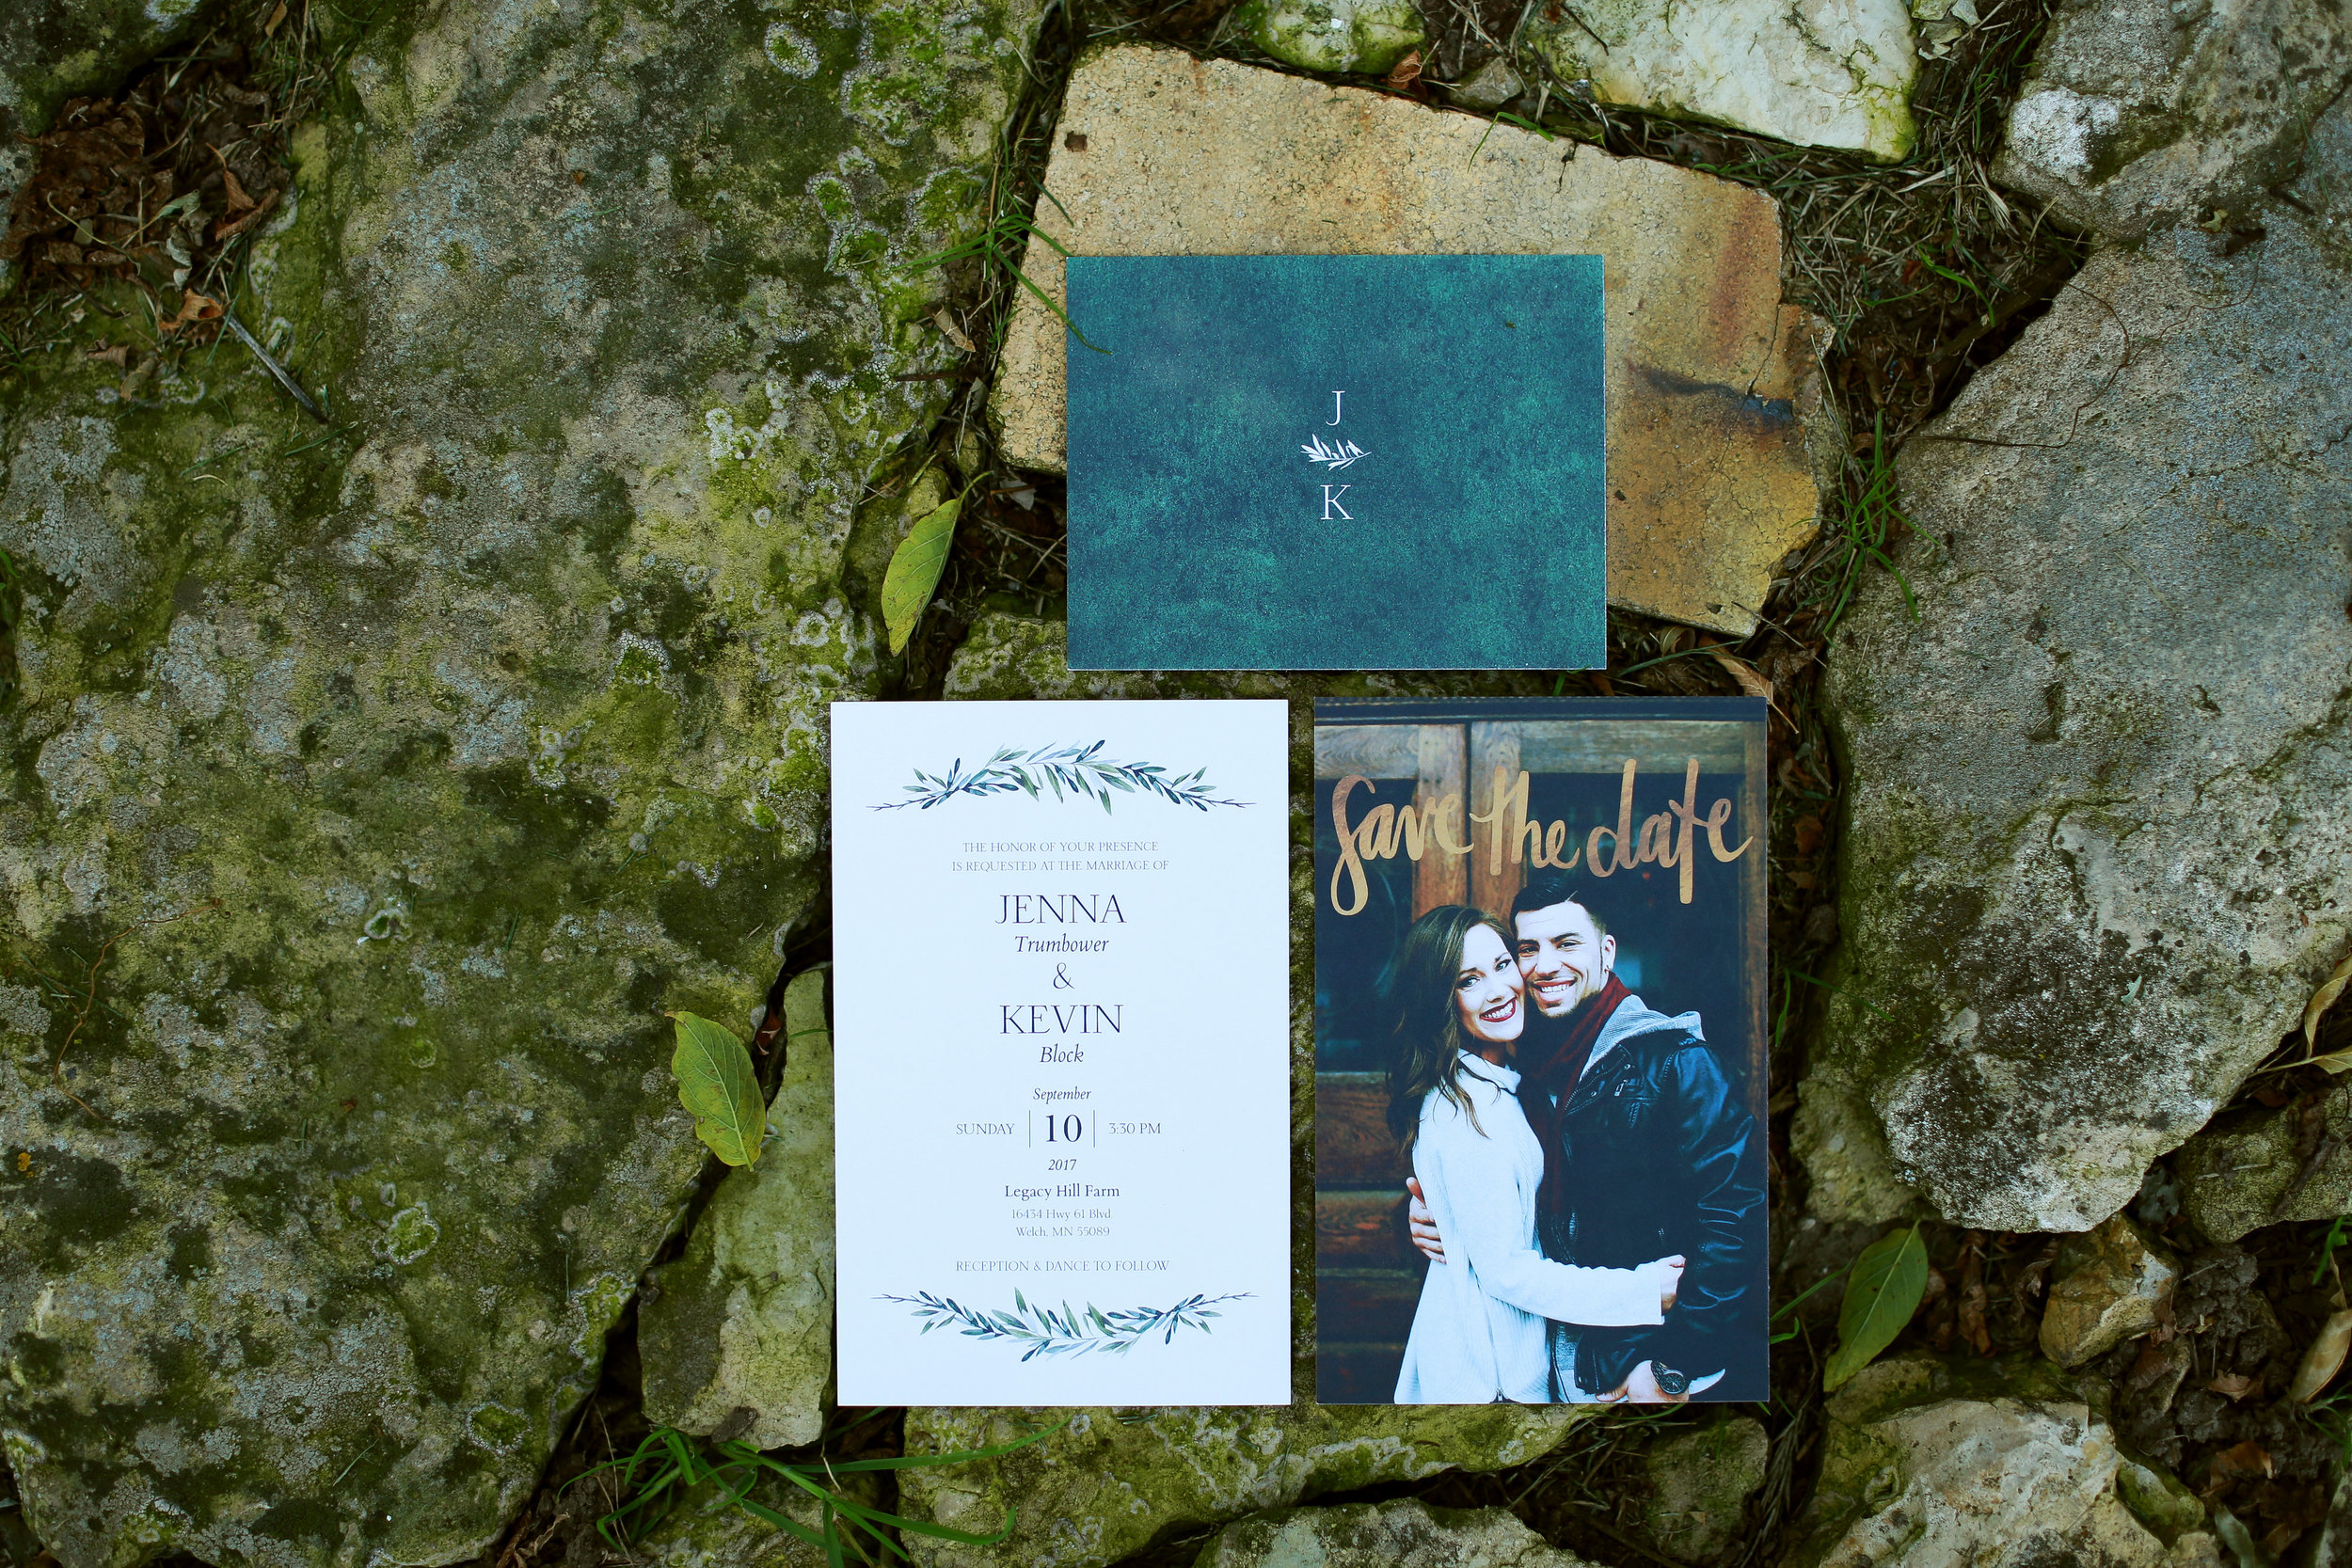 Jenna Kevin Wedding   Hannah Schmitt Photography   wedding invitation and save the date suite detail shot   greenery, flat lay on rocks